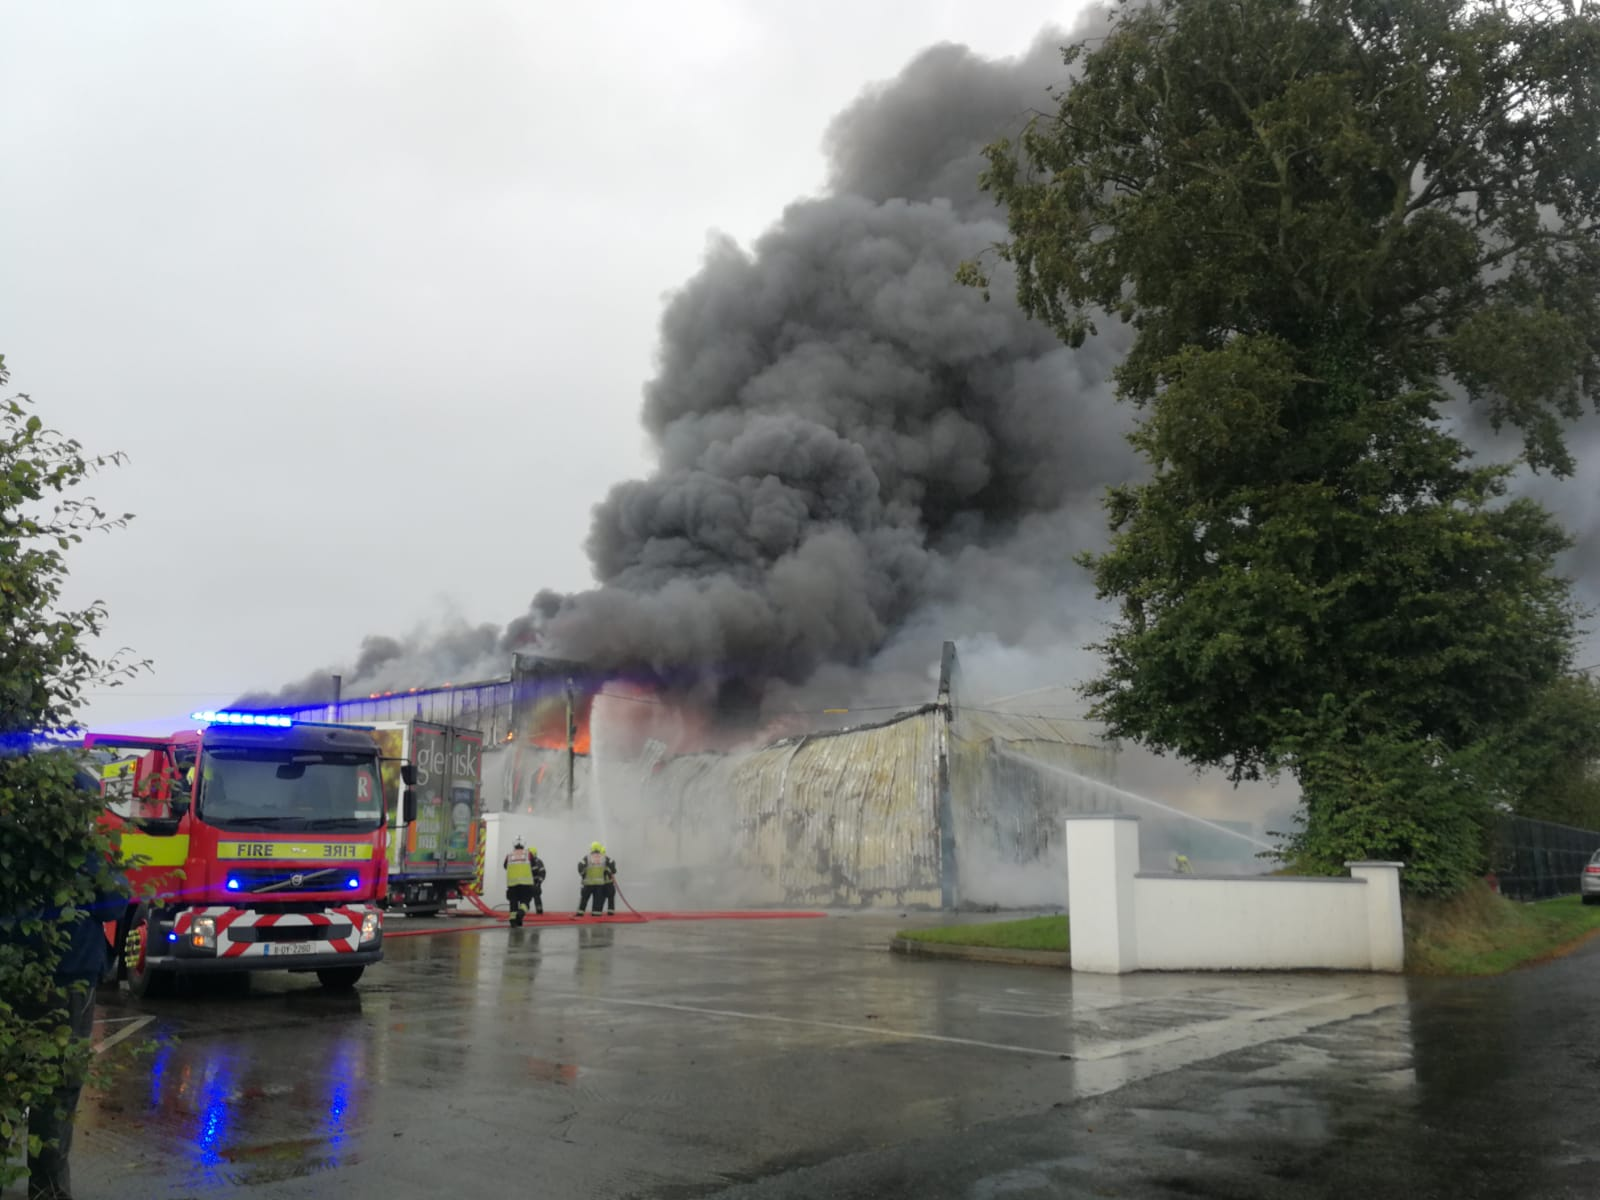 A serious fire at the Glenisk plant in County Offaly